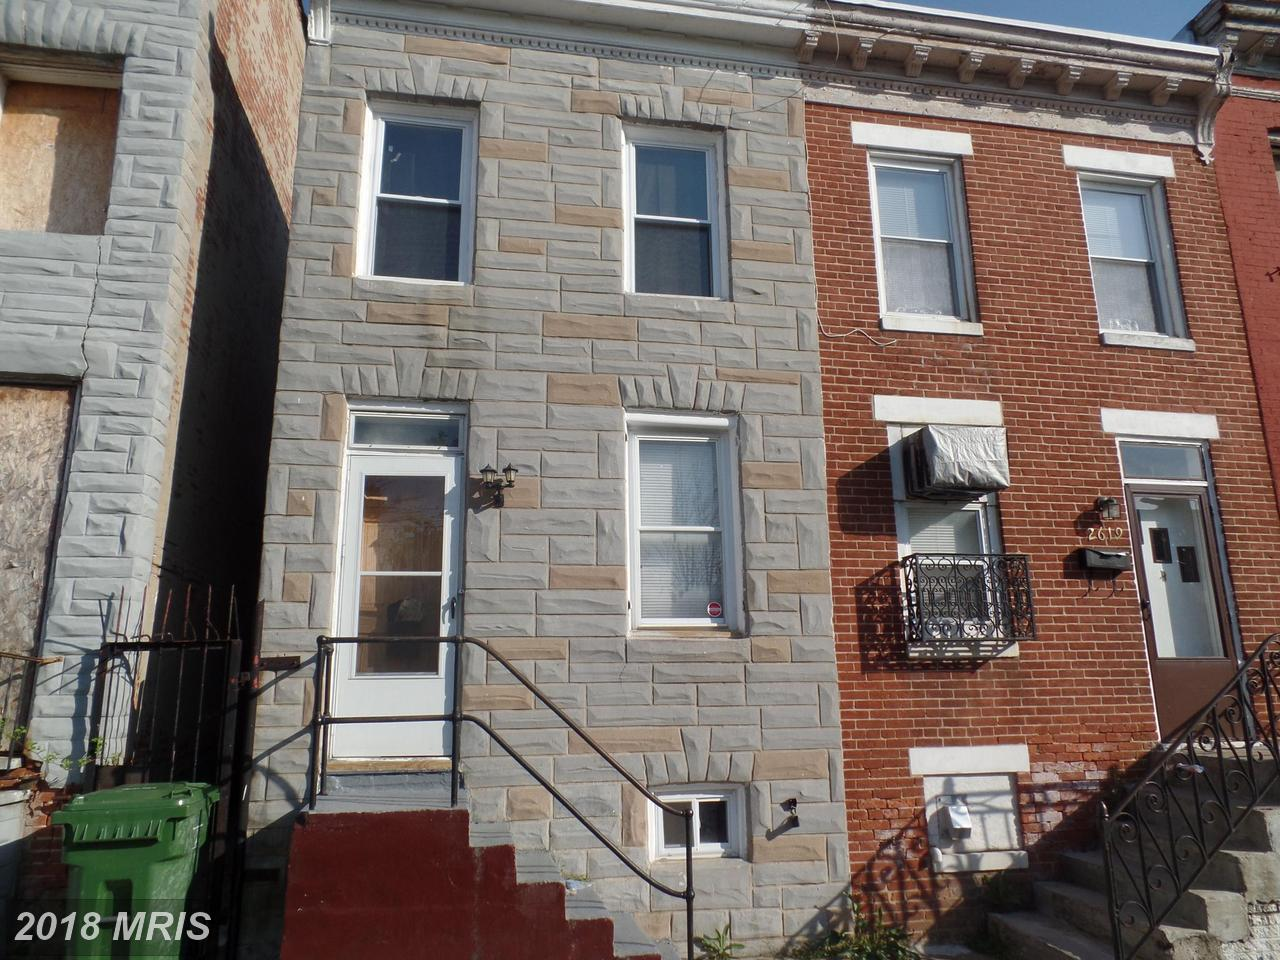 2 bedroom homes for sale in baltimore md baltimore mls baltimore real estate for 2 bedroom homes for rent baltimore md